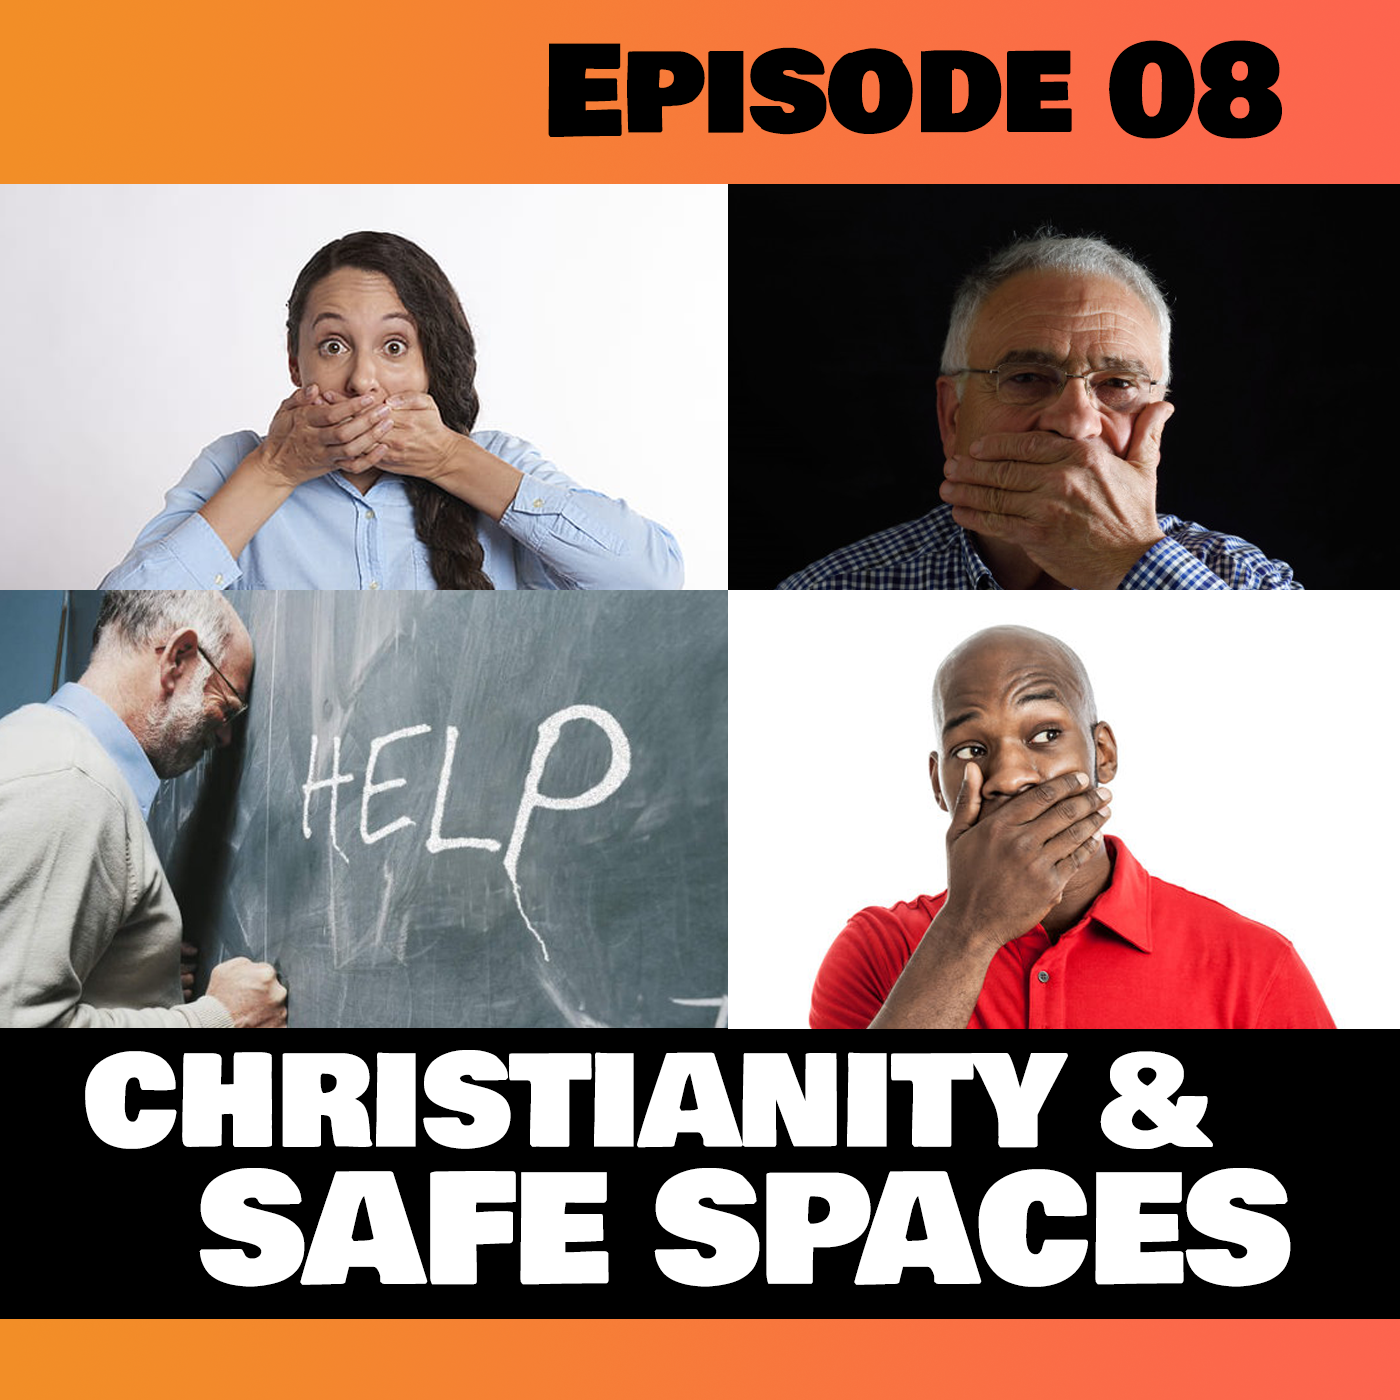 Faith & Safe Spaces